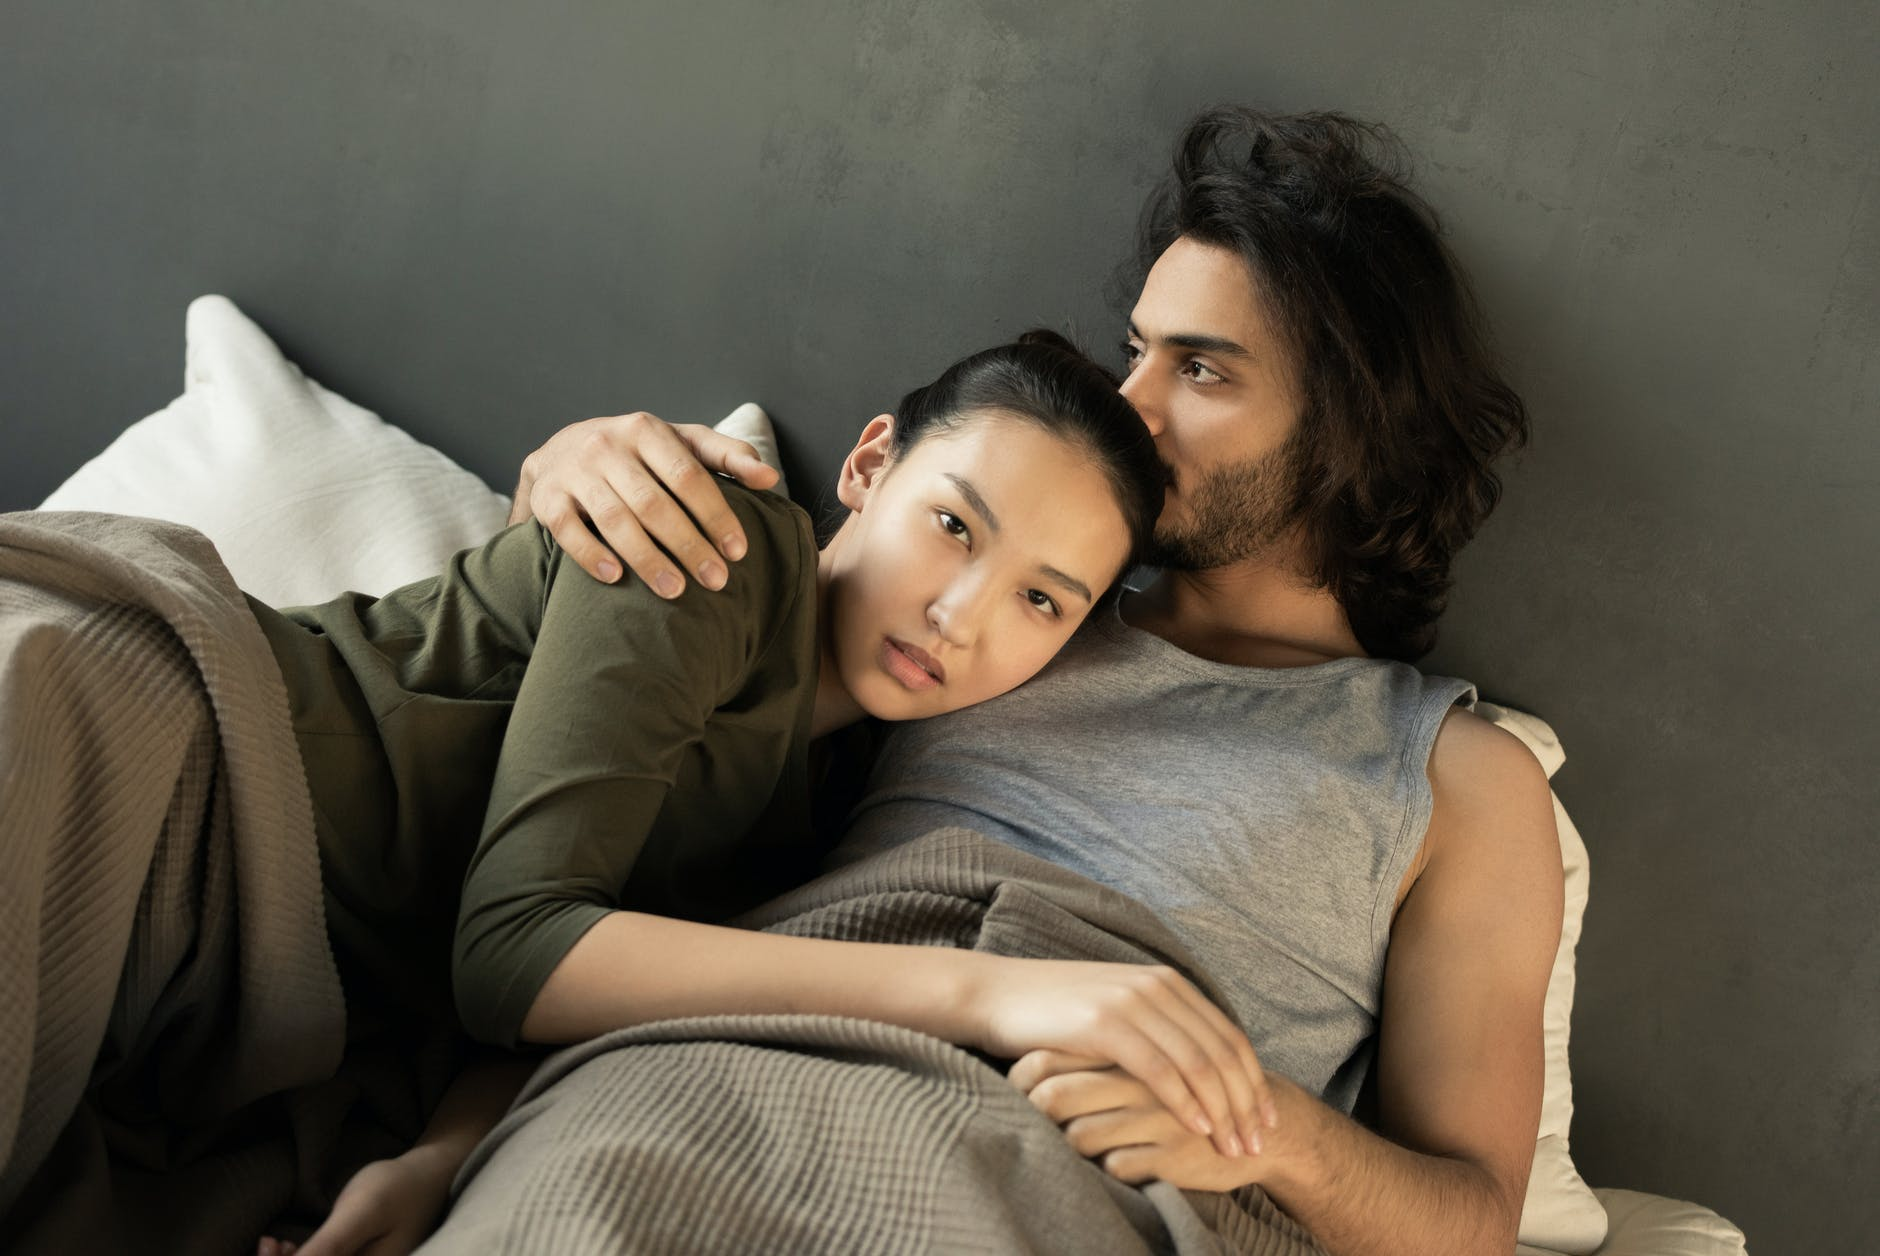 Bearded Asian man and an Asian woman cuddle in bed with green sheets